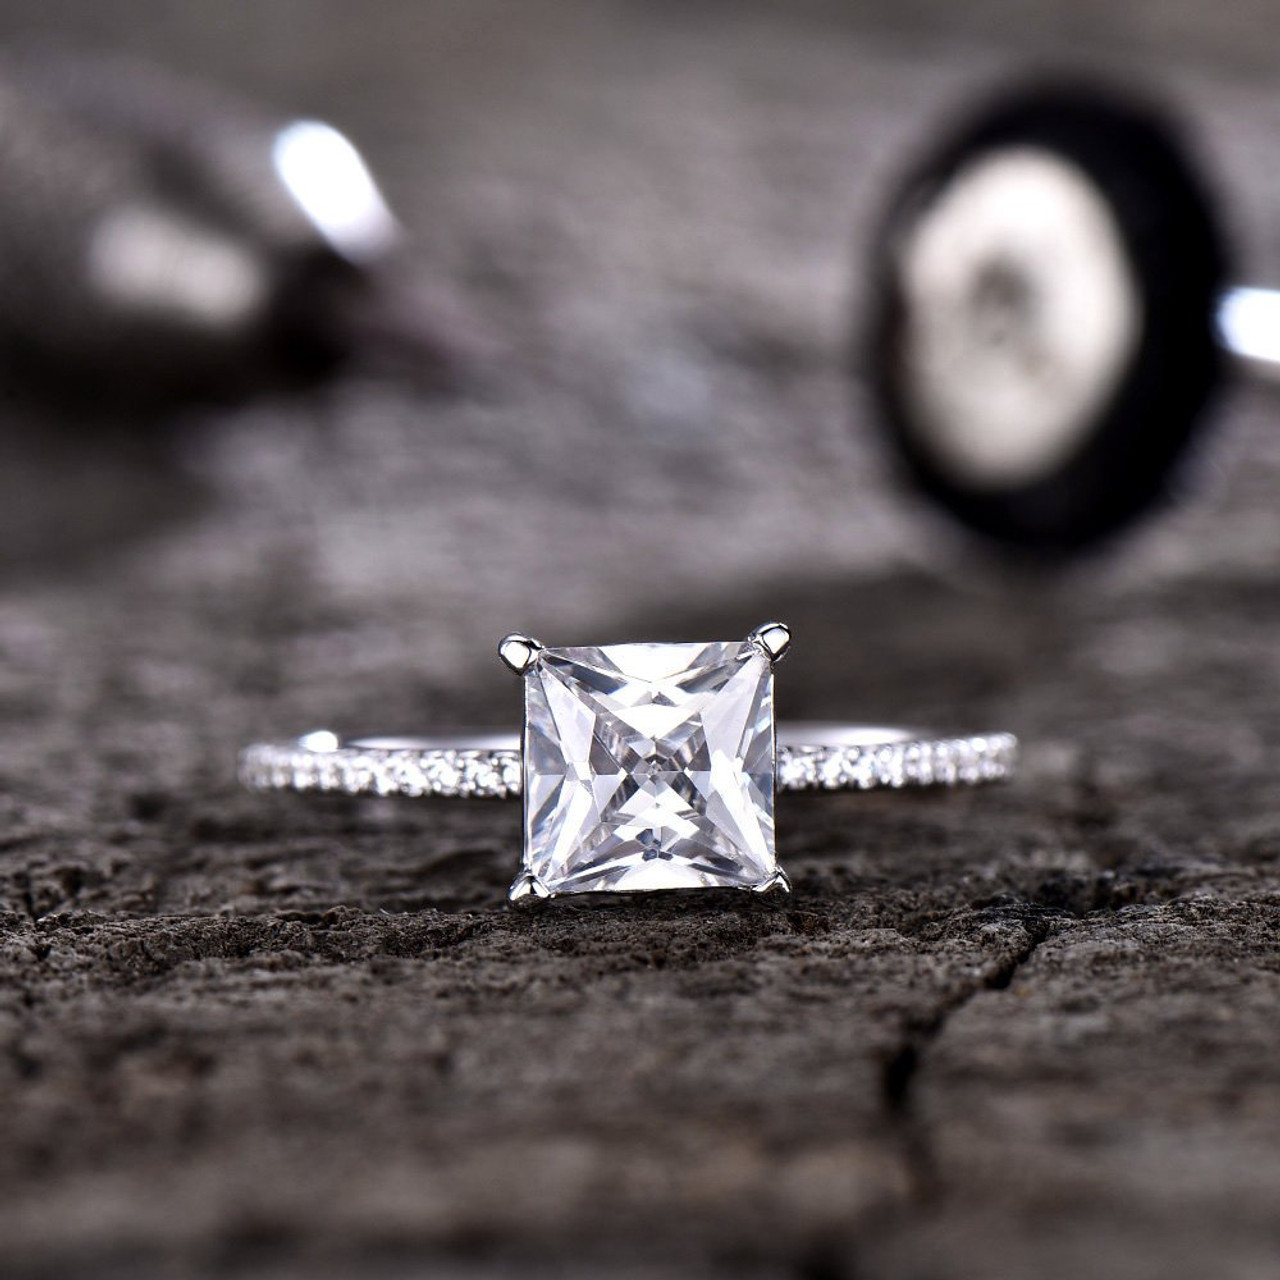 05b9a8b6c74e7 Forever One Moissanite Ring 6.5mm Princess Cut Solitaire Engagement Ring  Diamond Wedding Band Solid 14K/18K White Gold Bridal Ring